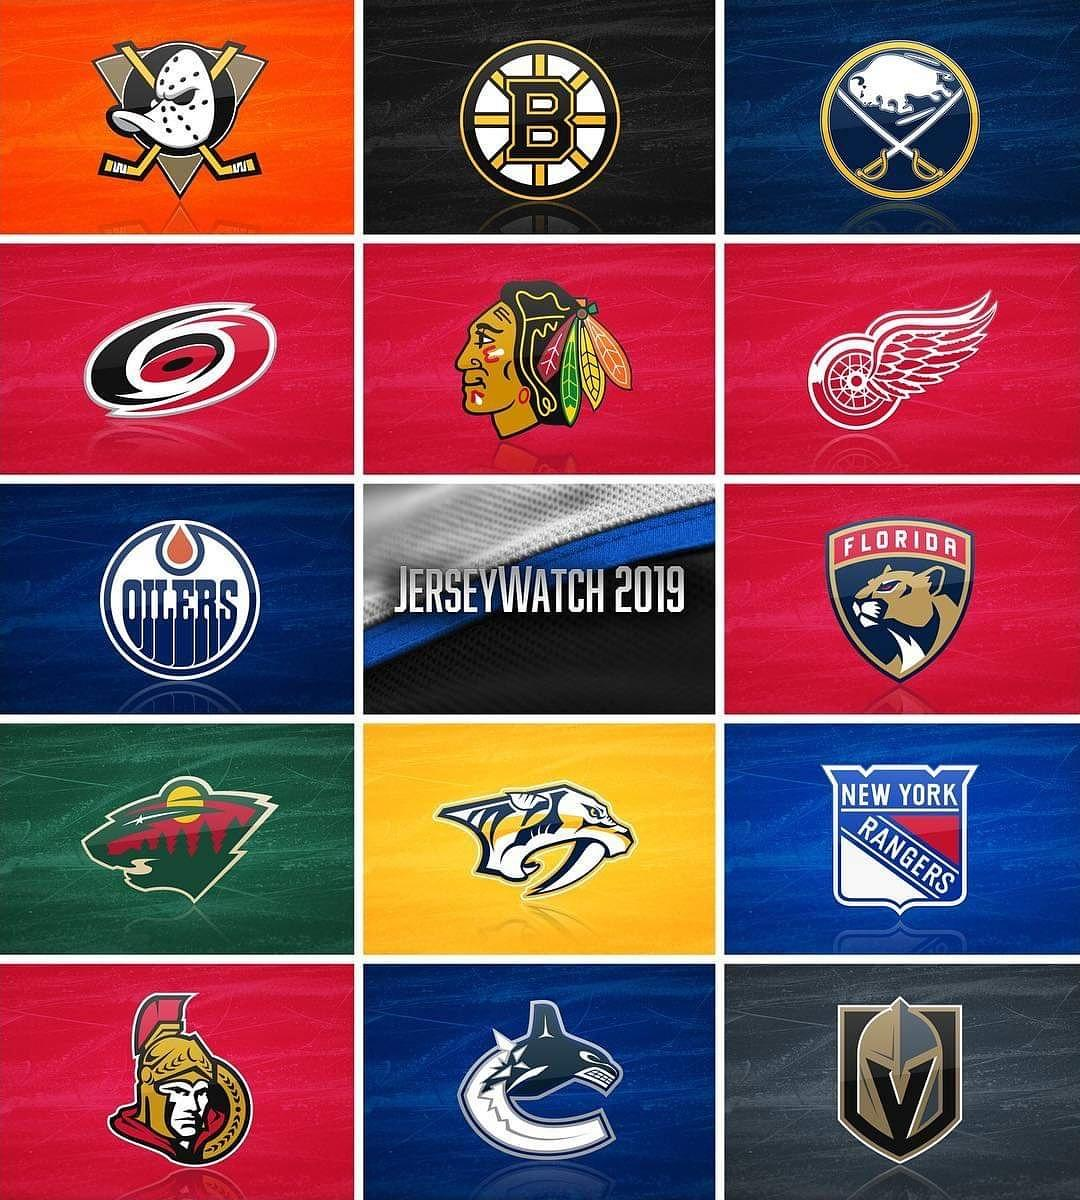 NHL JERSEY WATCH 2019